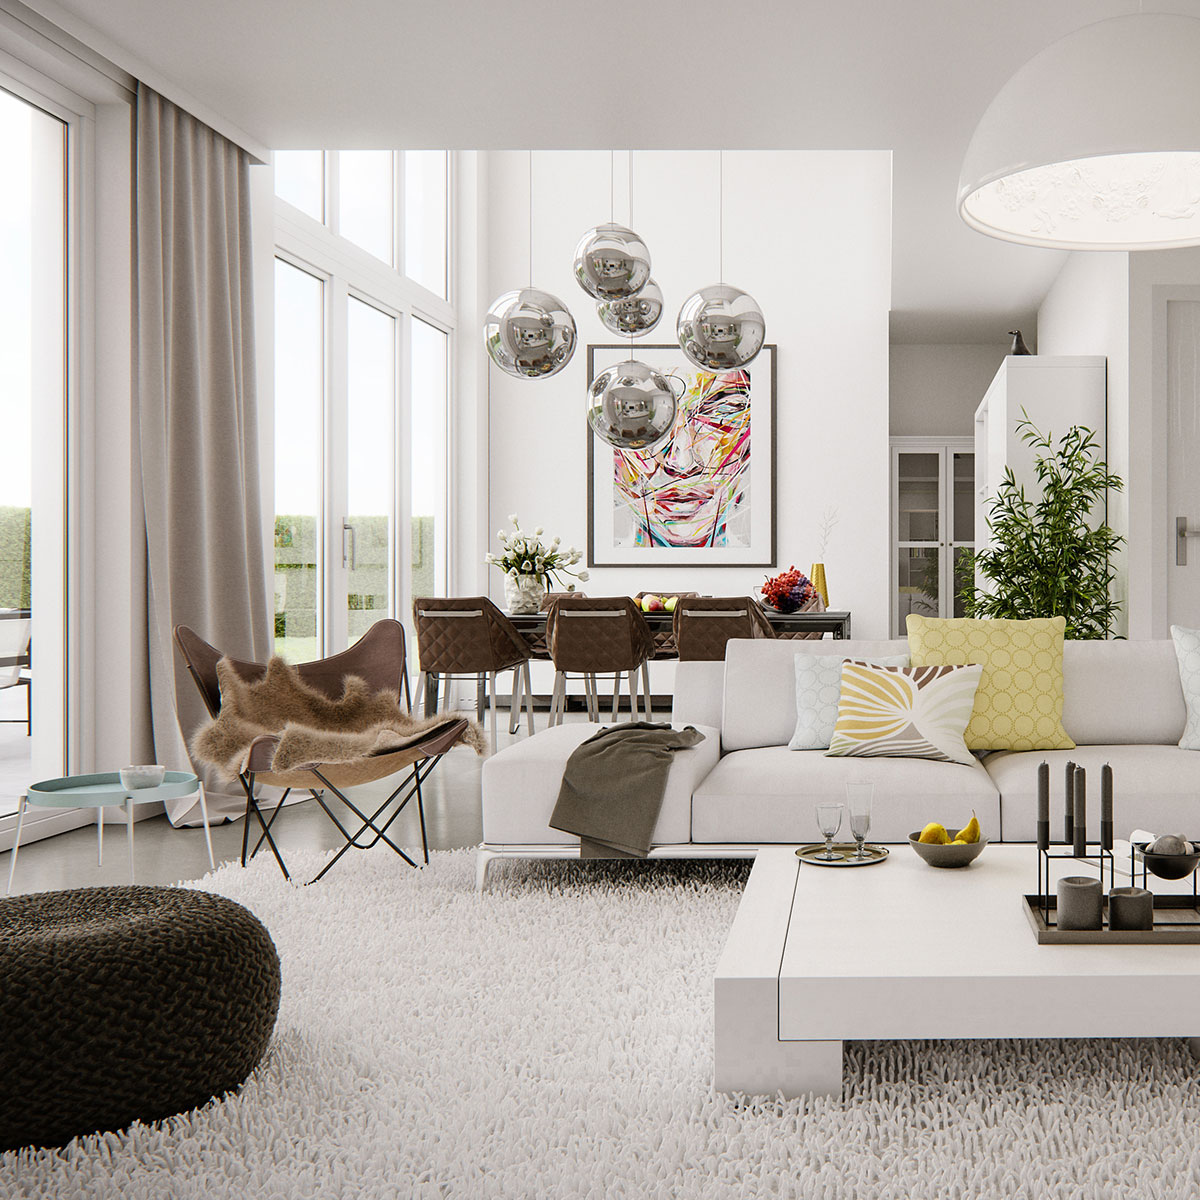 Modern bright interior adorable home for Decoration de salon moderne